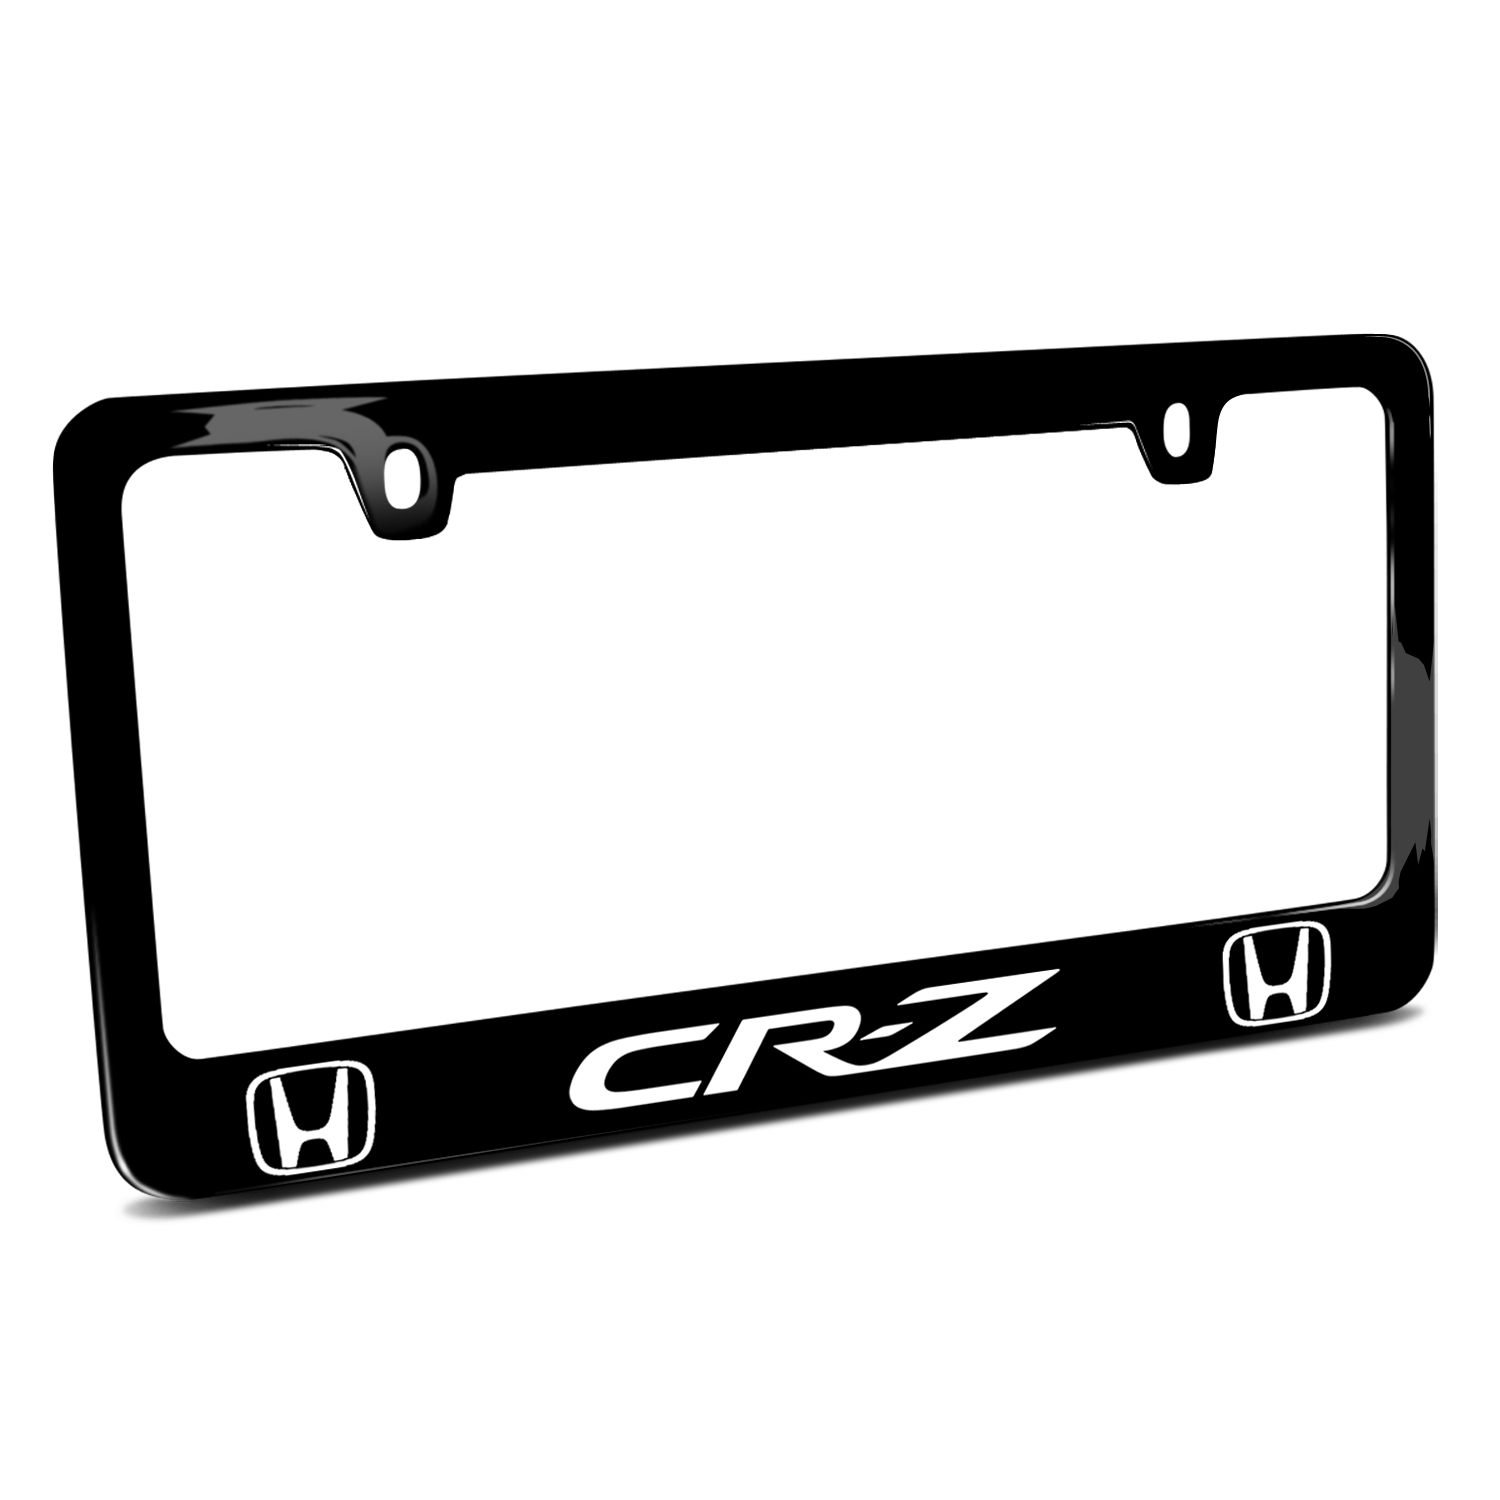 Honda CR-Z Dual Logo Black Metal License Plate Frame